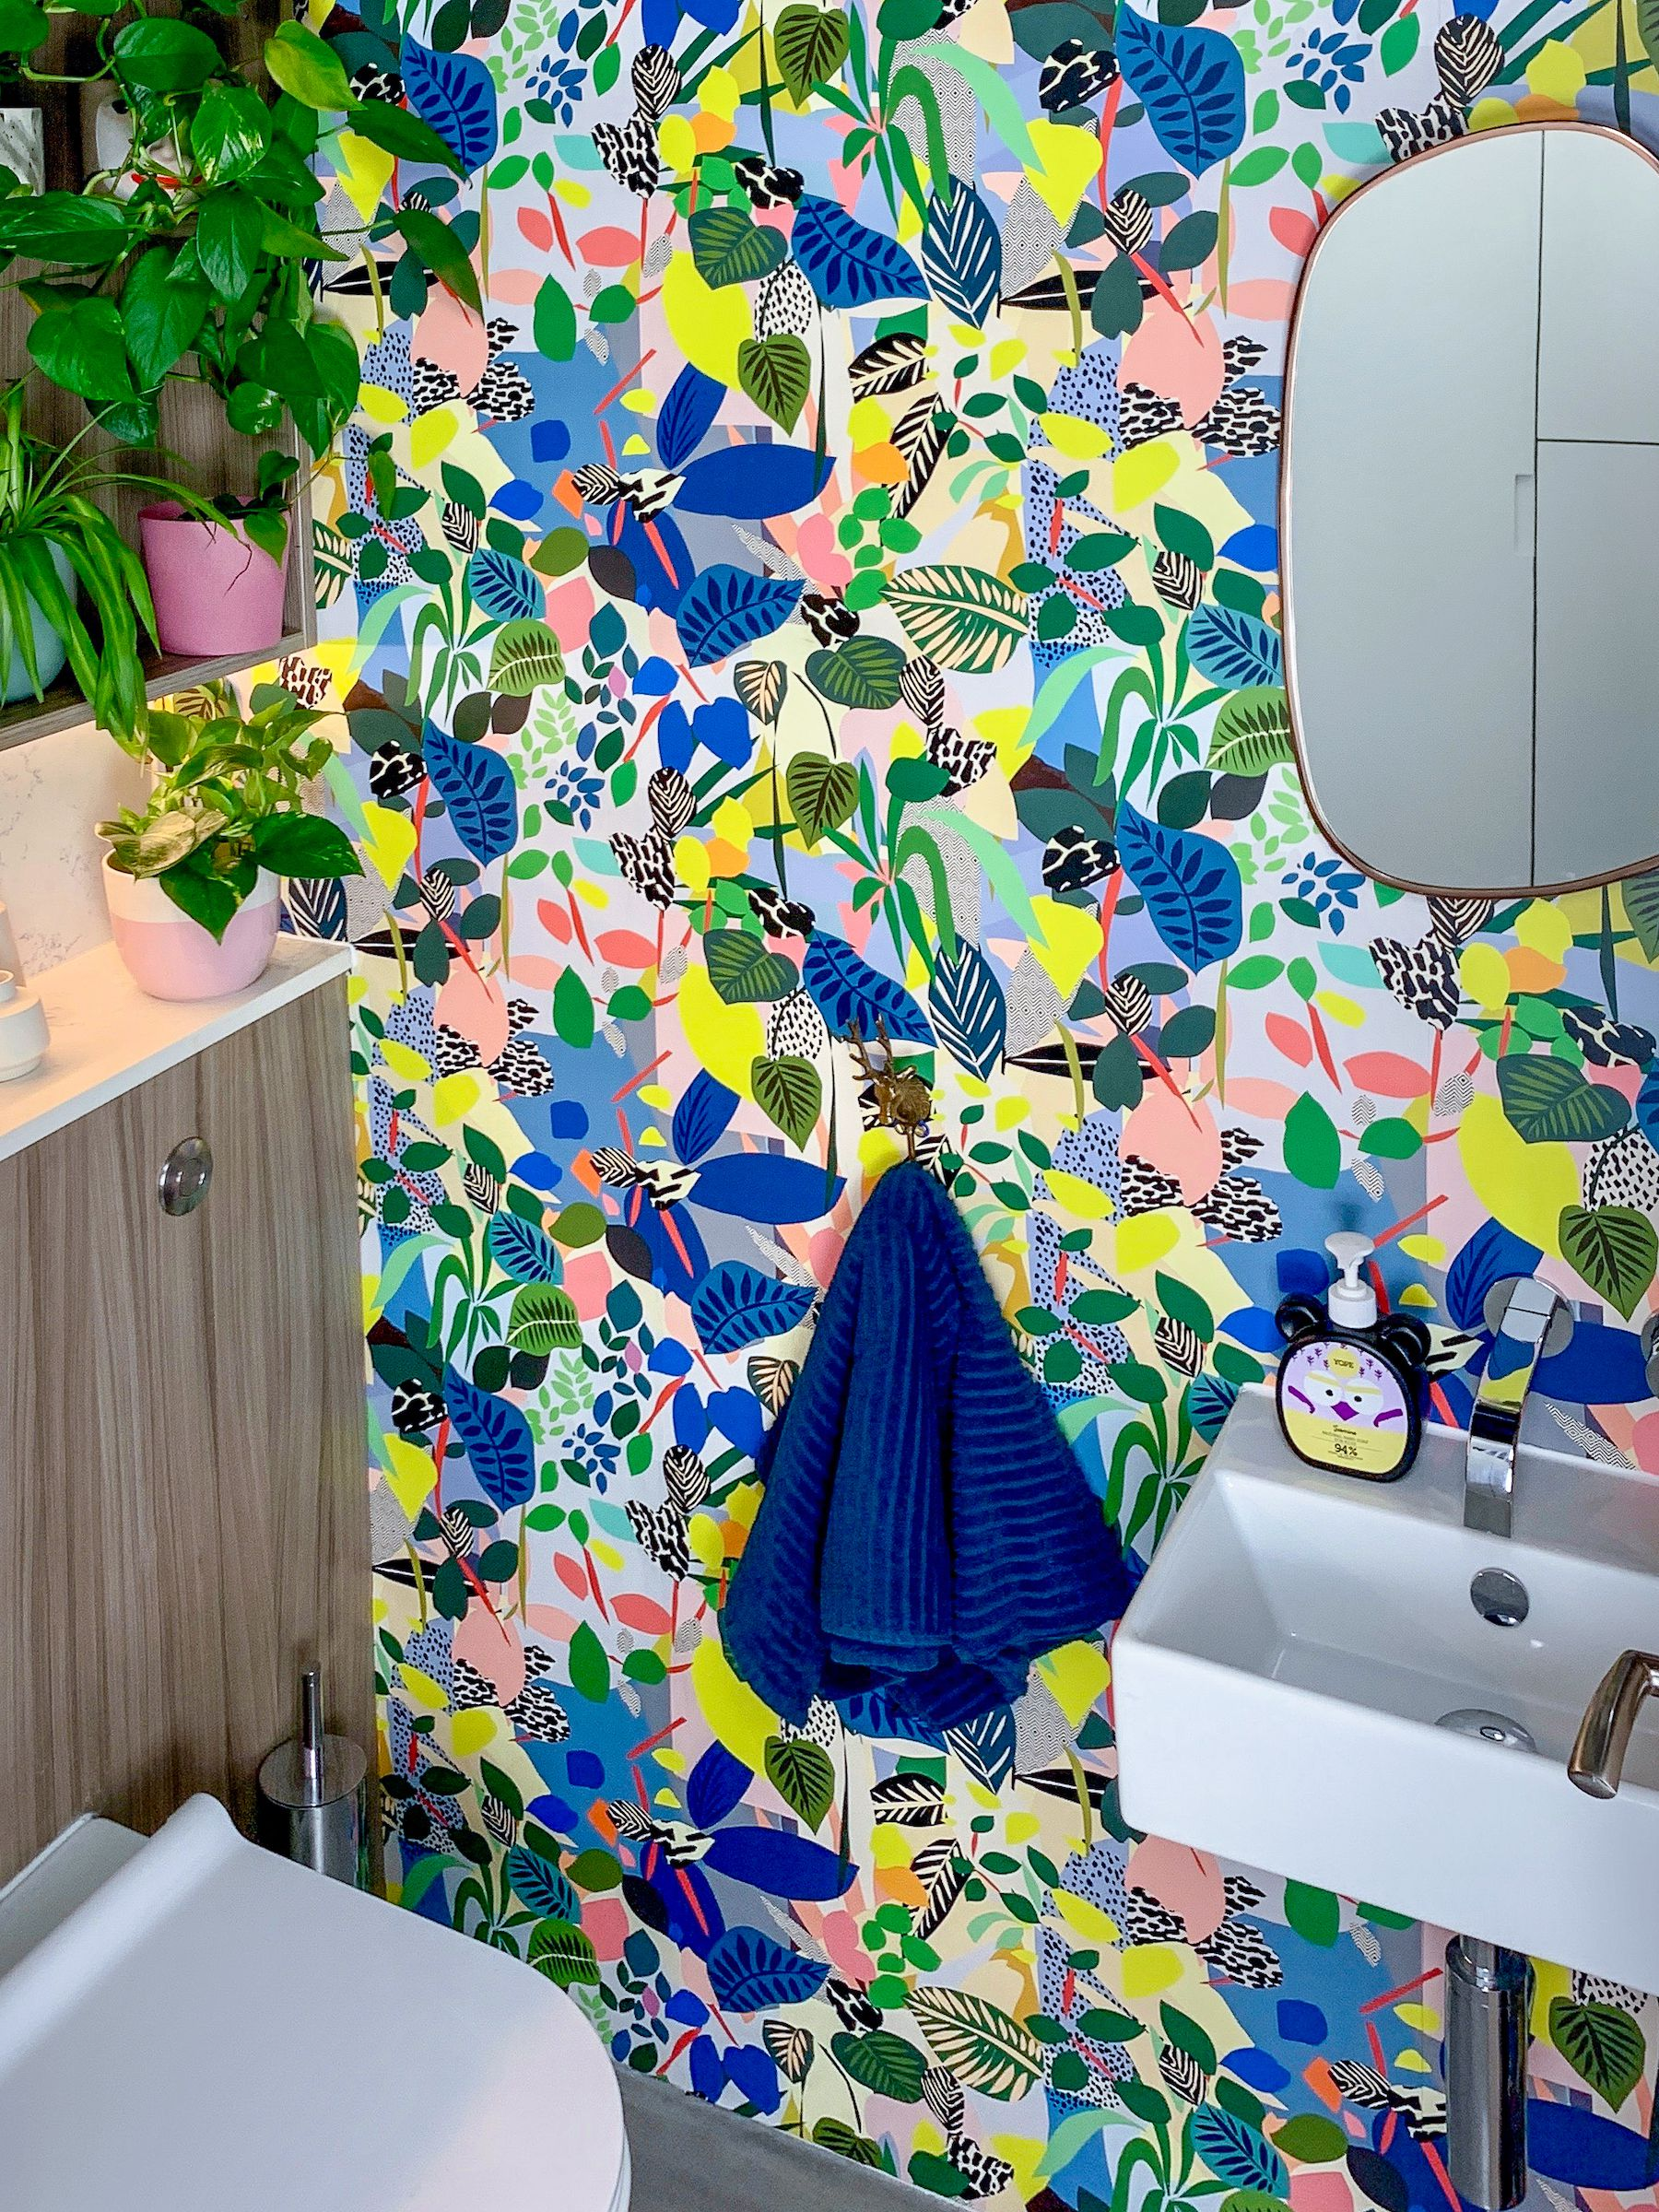 Hockney Wallpaper • Kitty McCall • Colorful Wallpaper • Tropical Wallpaper • Powder Room • Colorful Powder Room